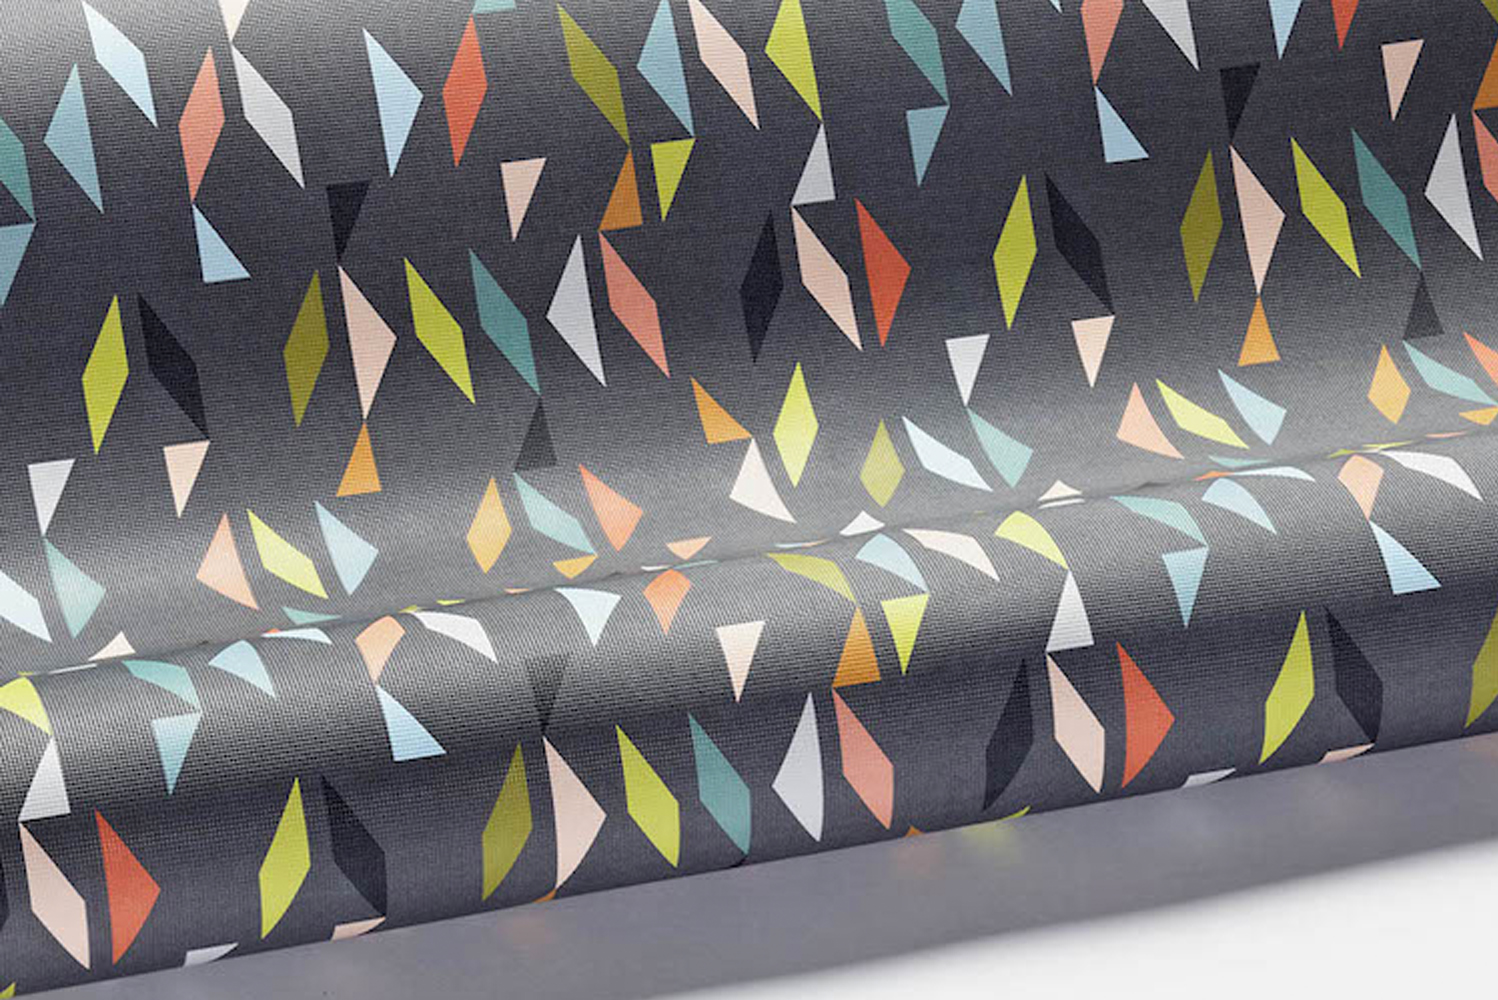 Introducing Fragment, one of the newest collections of textiles from US-based textile and wallcovering company Arc-Com.